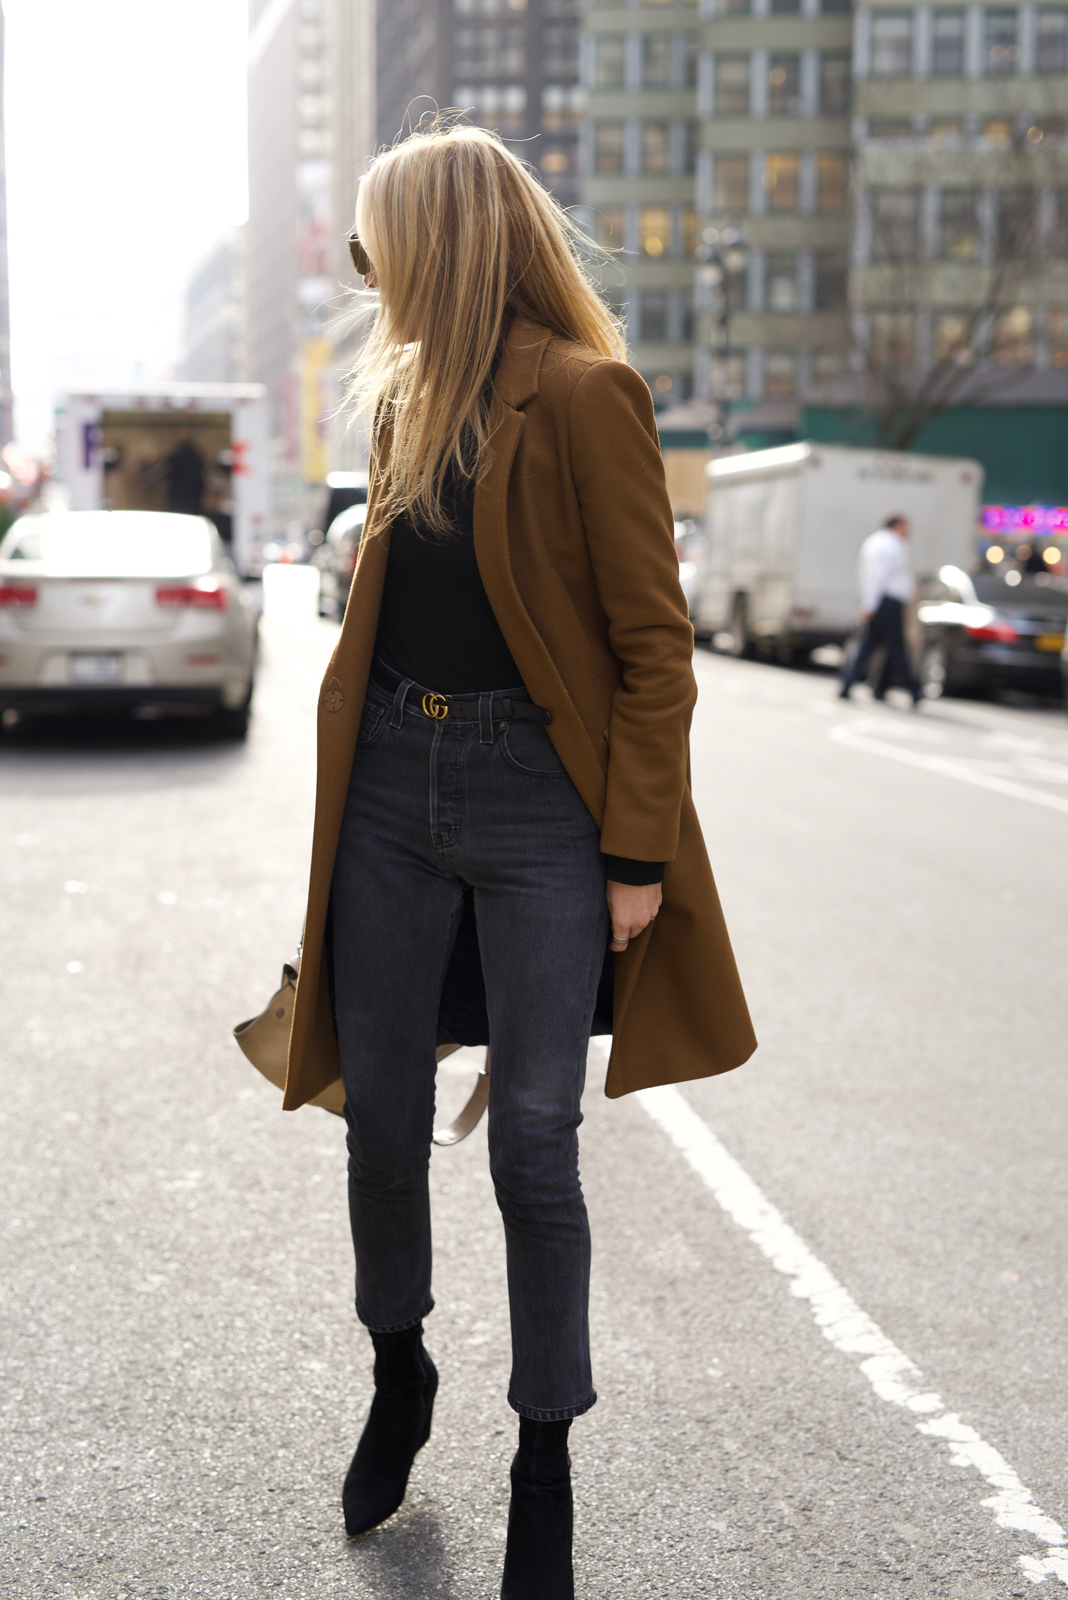 NYC Street Style in All Black with a Camel Coat